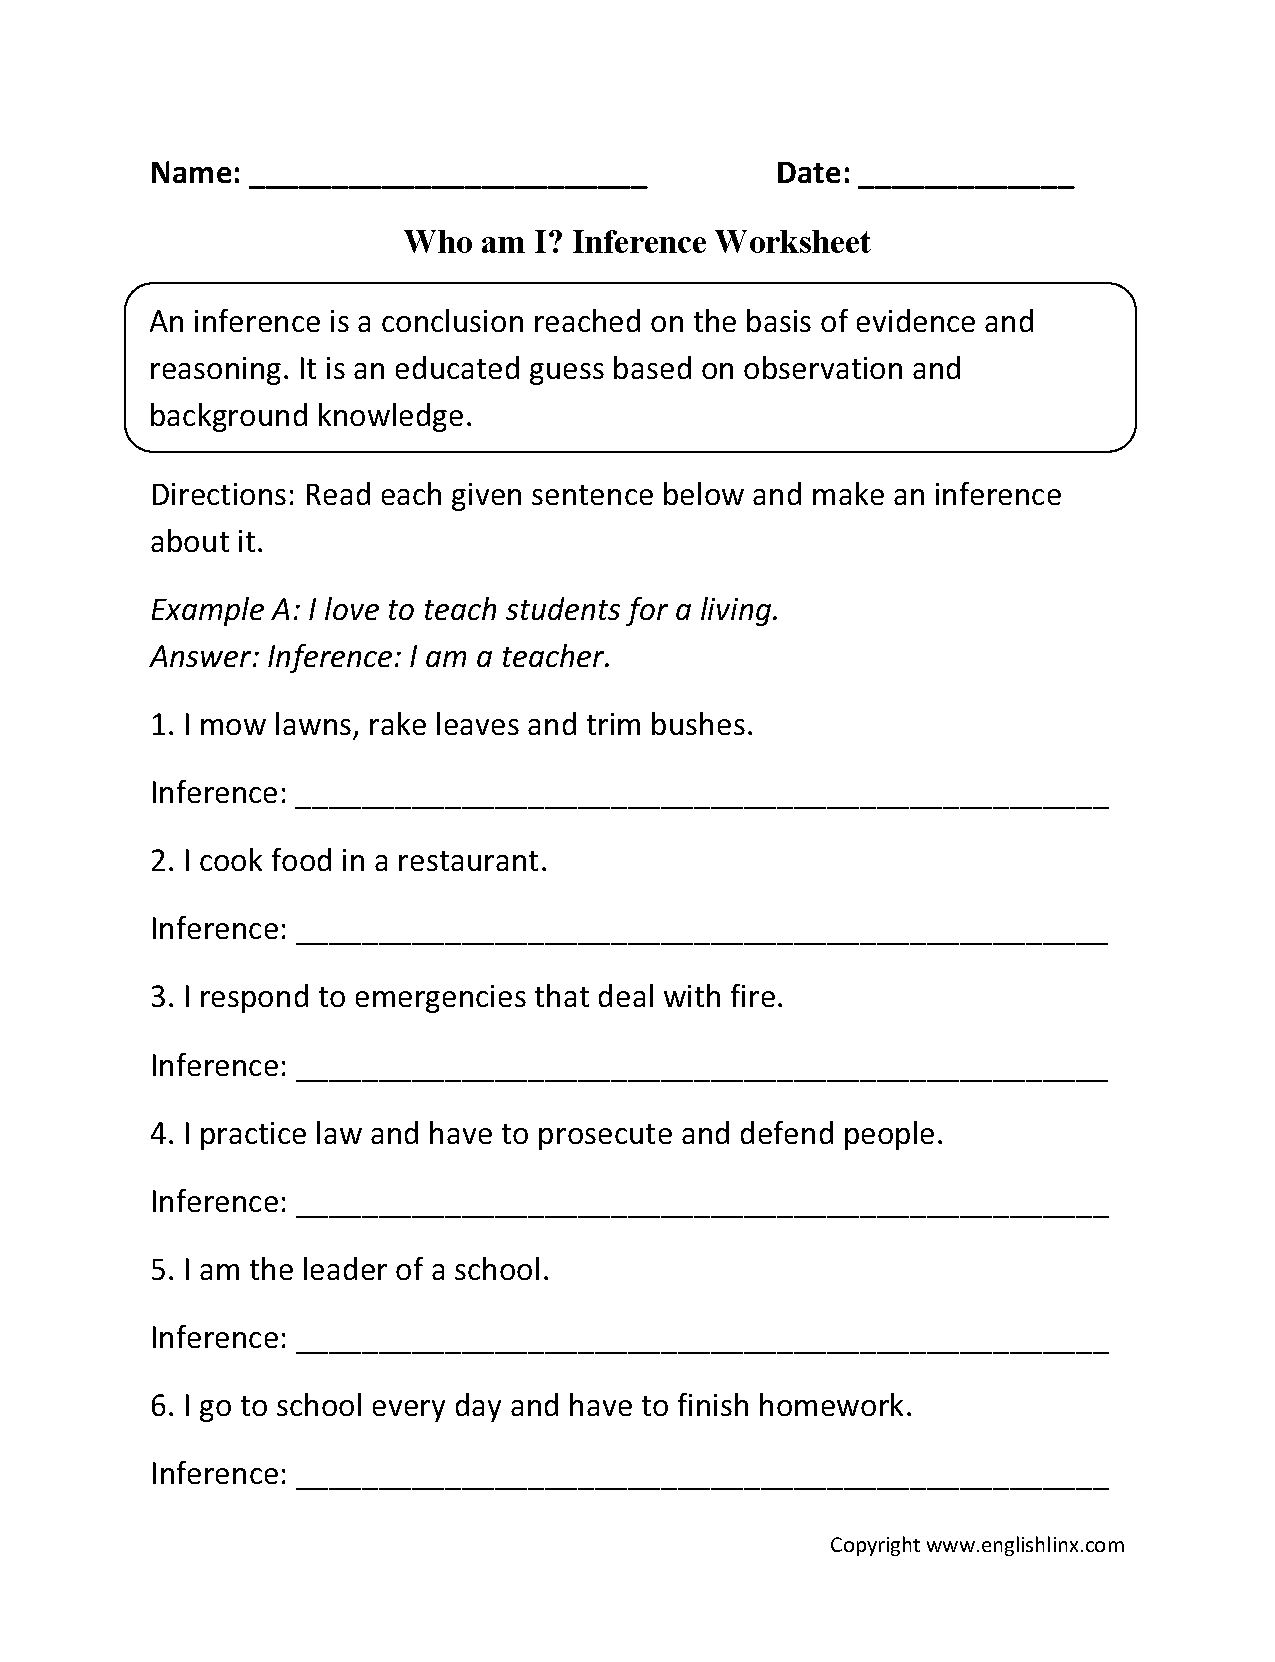 Worksheets Inferences Worksheet 1 who am i inference worksheets lessons pinterest worksheets